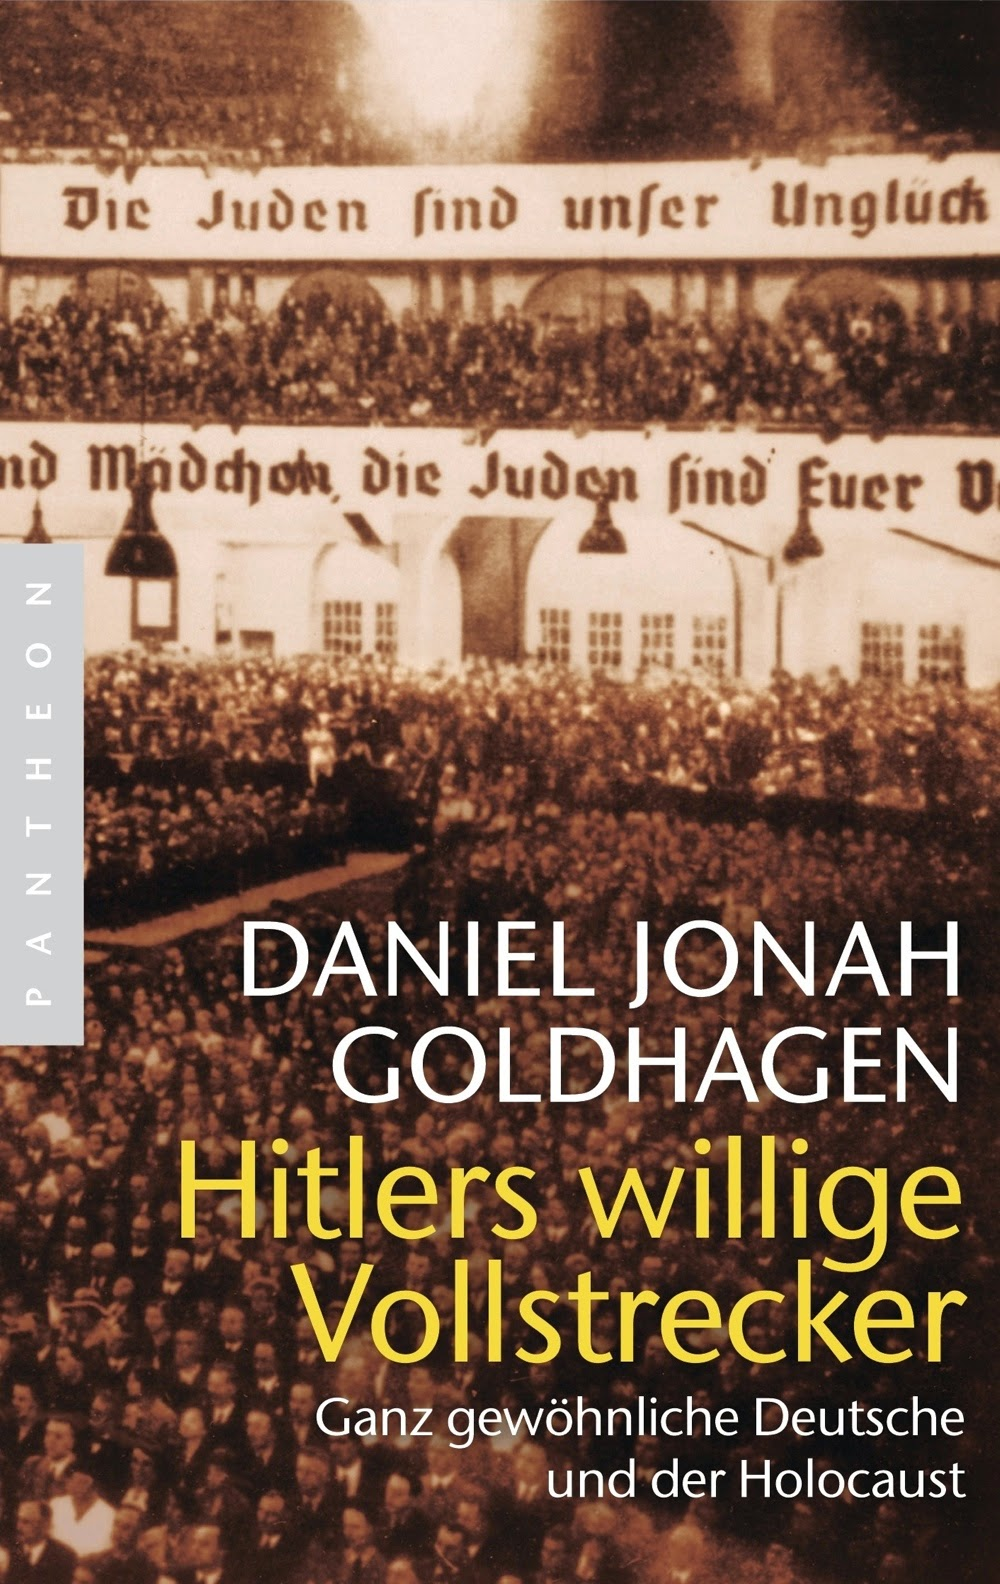 a literary analysis of hitlers willing executioners by jonah goldhagen